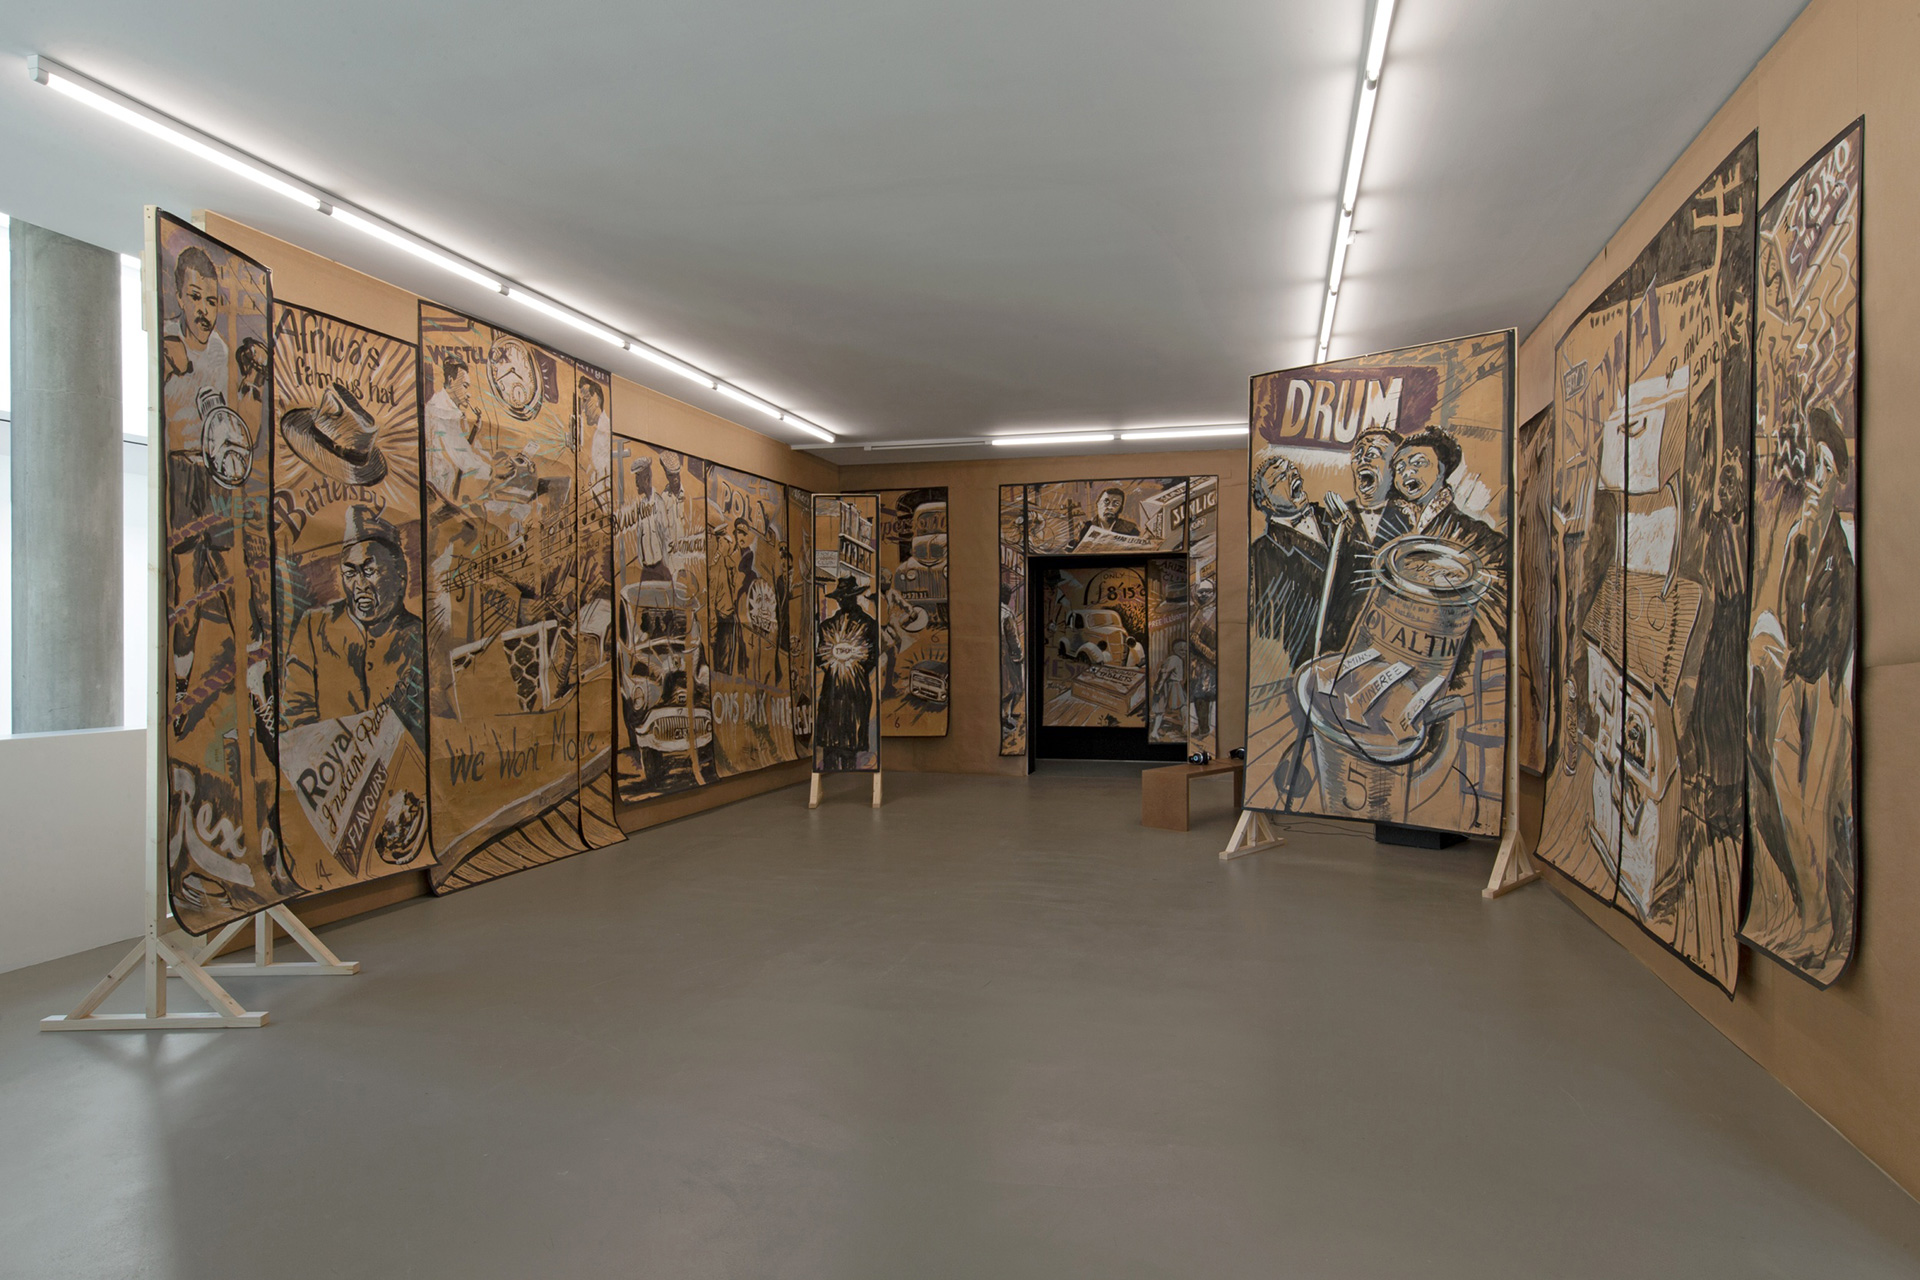 Backdrops made for Sophiatown, William Kentridge, 1989, Gouache on brown paper | William Kentridge| STIR